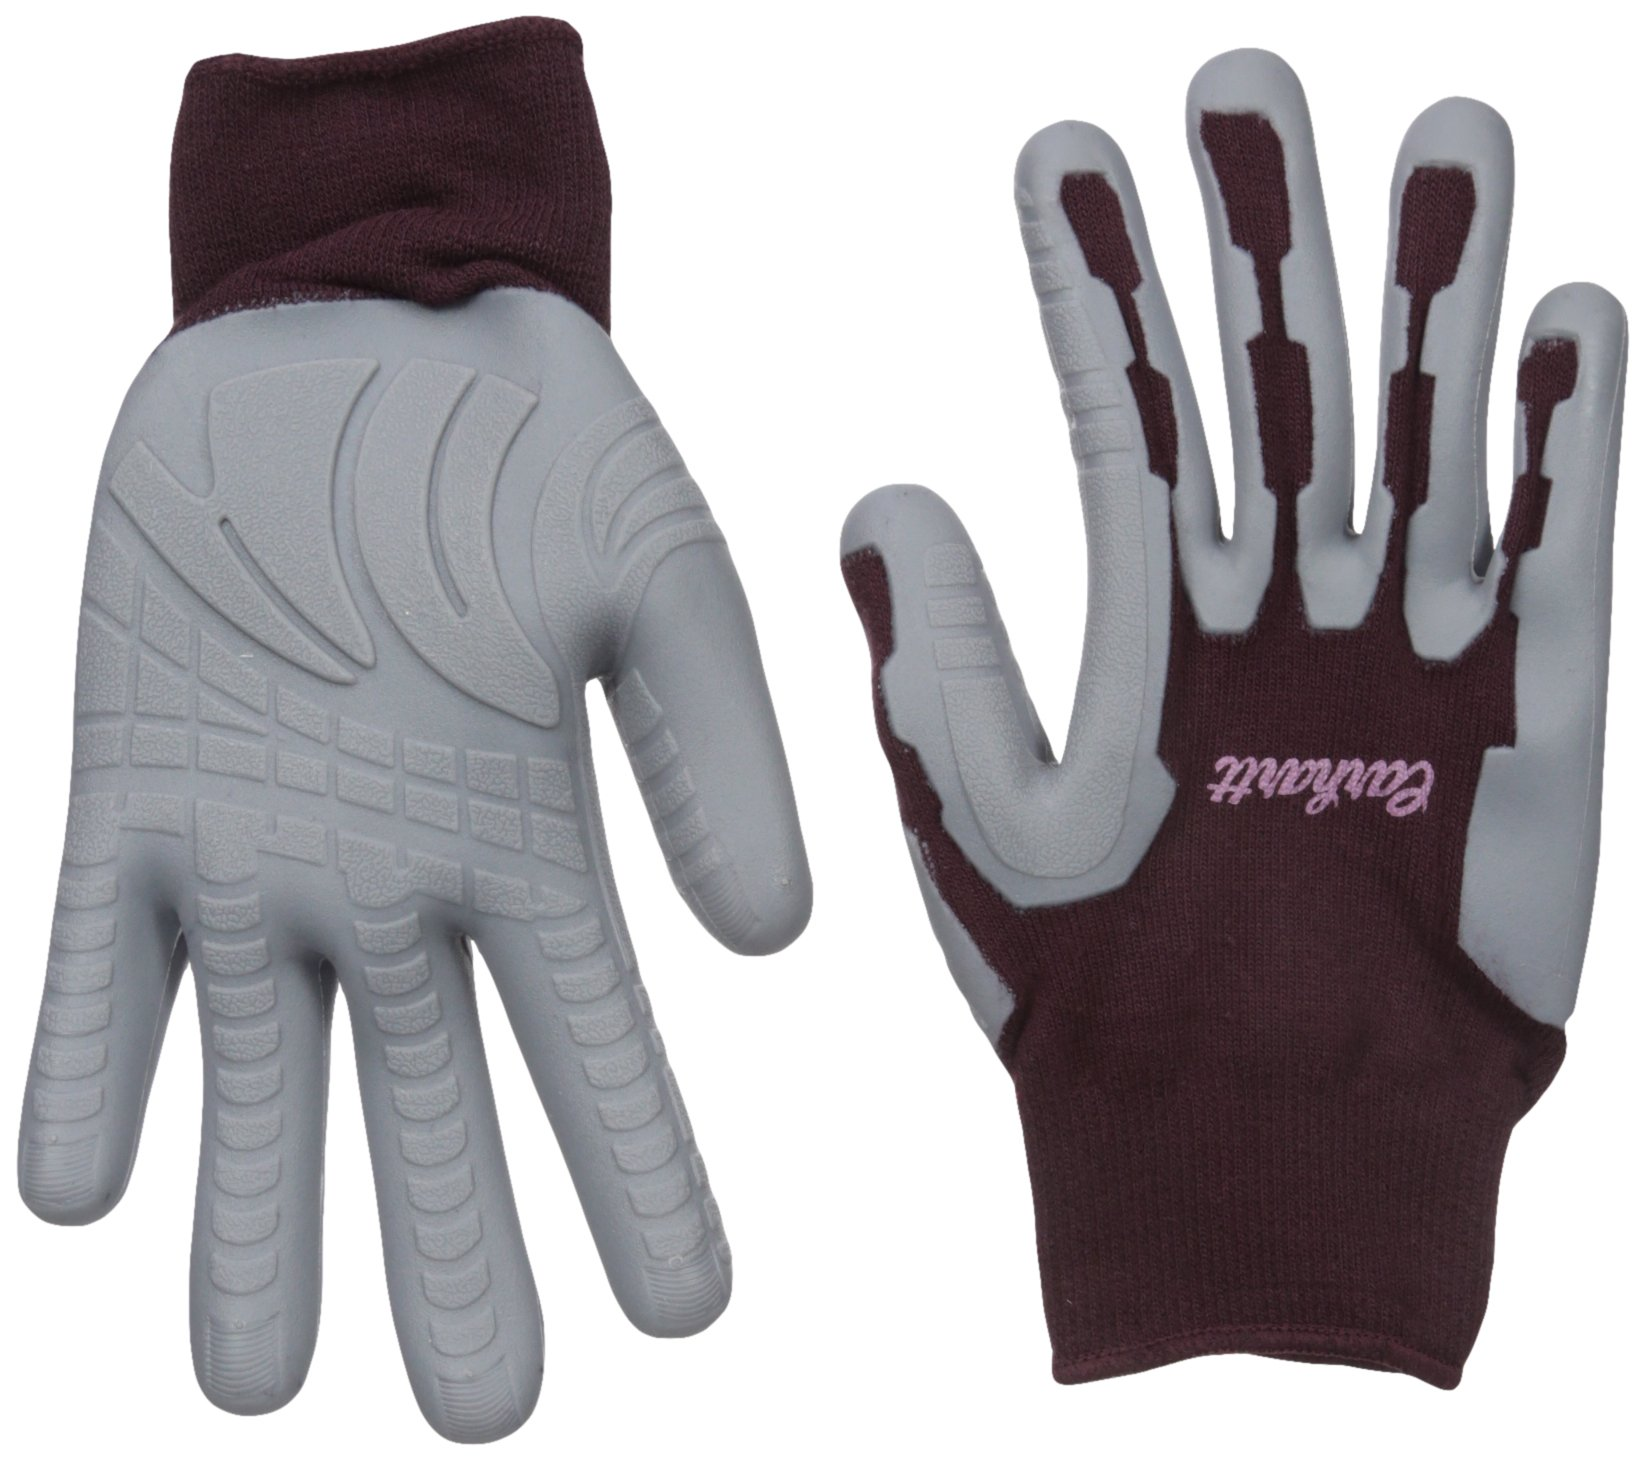 Carhartt Women's Durable Pro Palm Work Glove With Extreme Grip, Dusty Plum, S by Carhartt